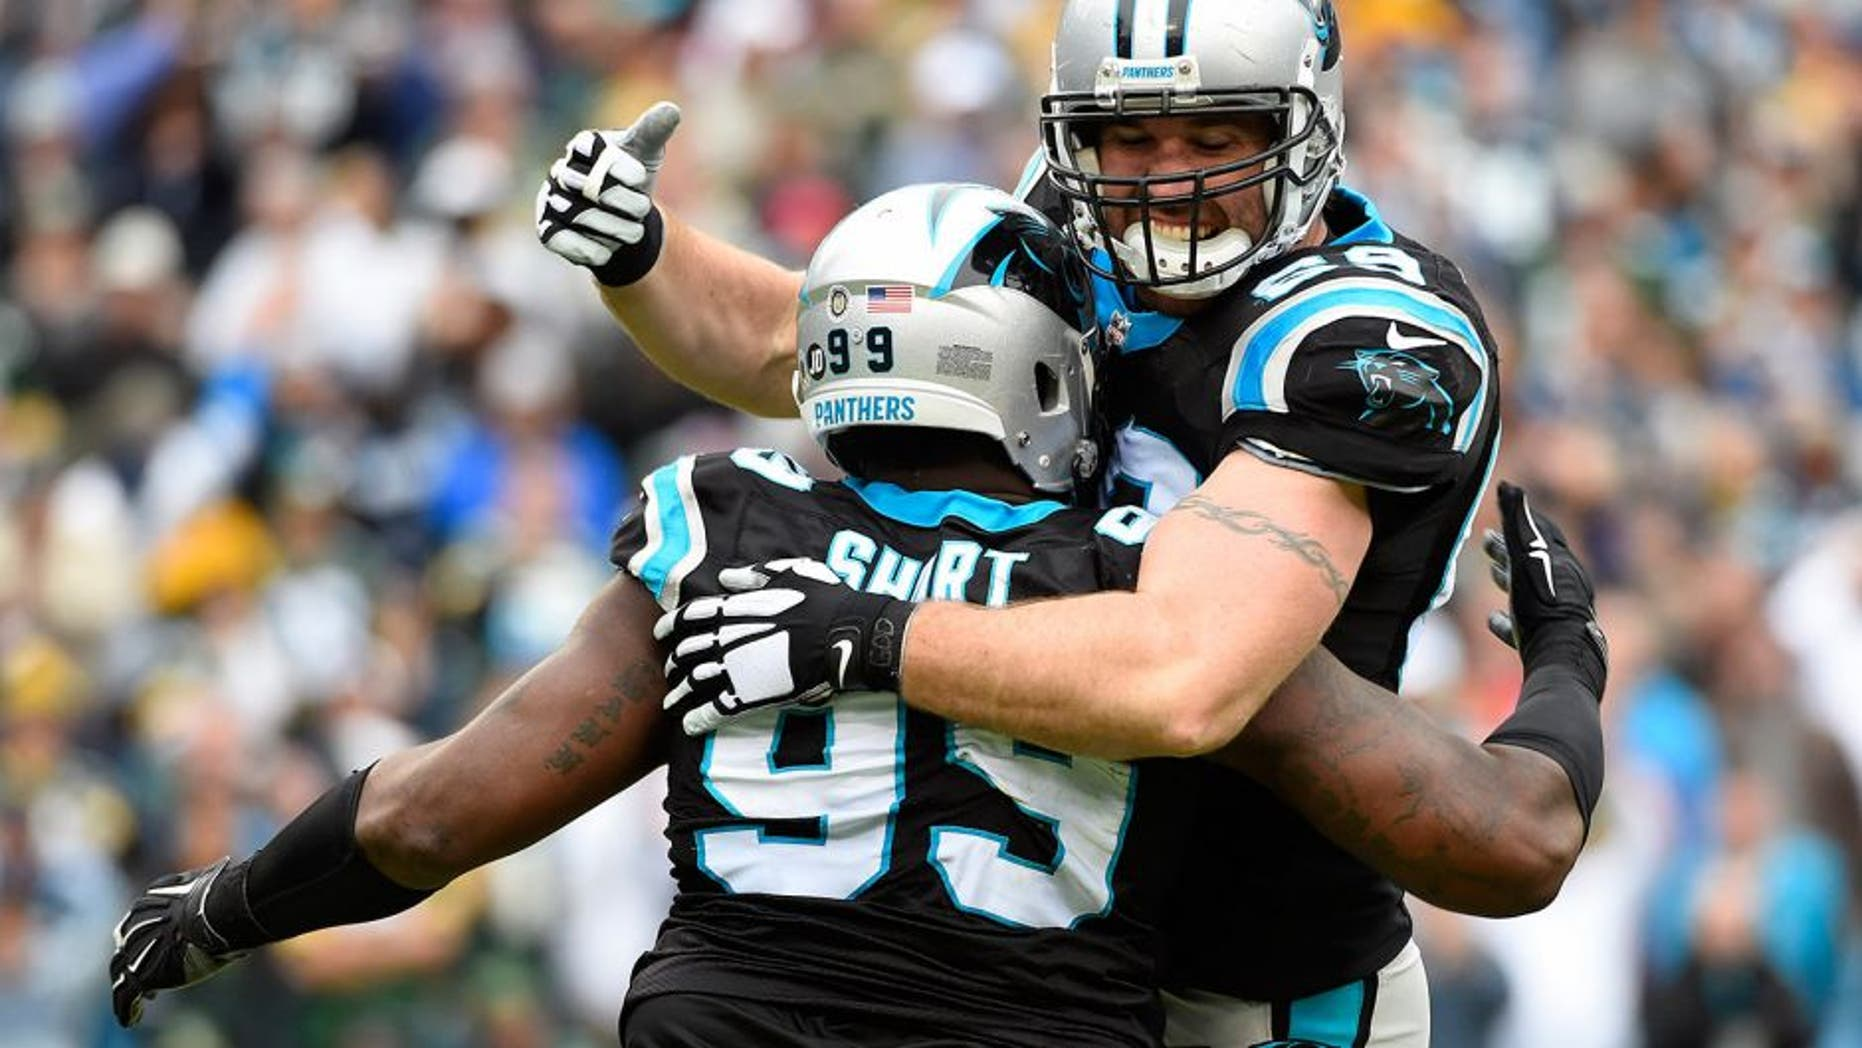 Nov 8, 2015; Charlotte, NC, USA; Carolina Panthers defensive tackle Kawann Short (99) celebrates with defensive end Jared Allen (69) after sacking Green Bay Packers quarterback Aaron Rodgers (12) (not pictured) in the second quarter at Bank of America Stadium. Mandatory Credit: Bob Donnan-USA TODAY Sports